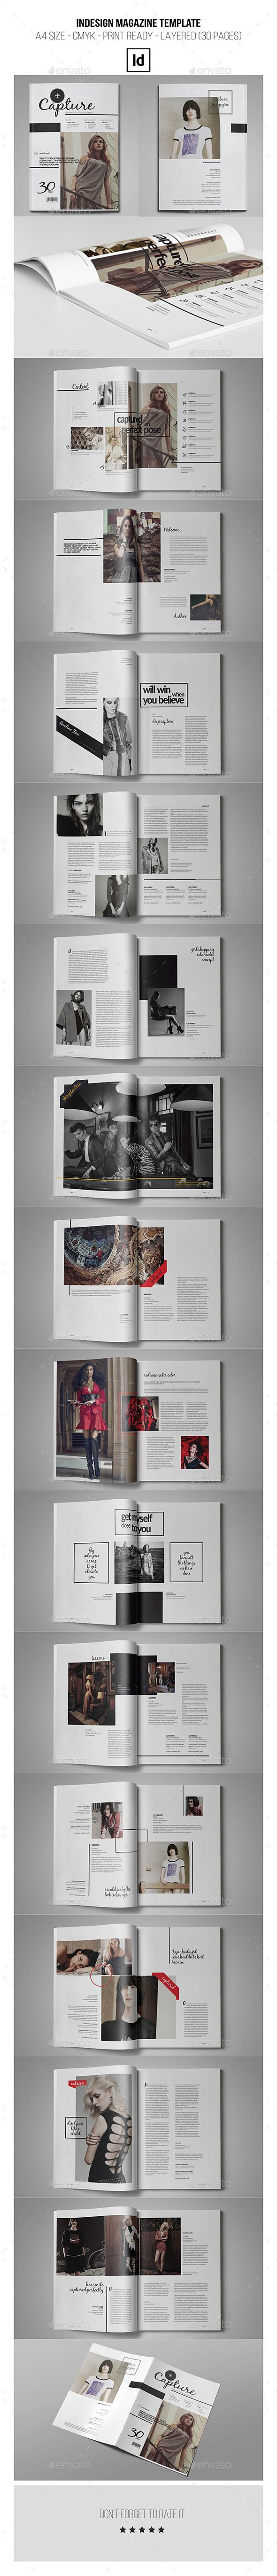 InDesign Magazine Template 30 Pages #magazinetemplate Download: http://graphicriver.net/item/indesign-magazine-template-30-pages/10367422?ref=ksioks